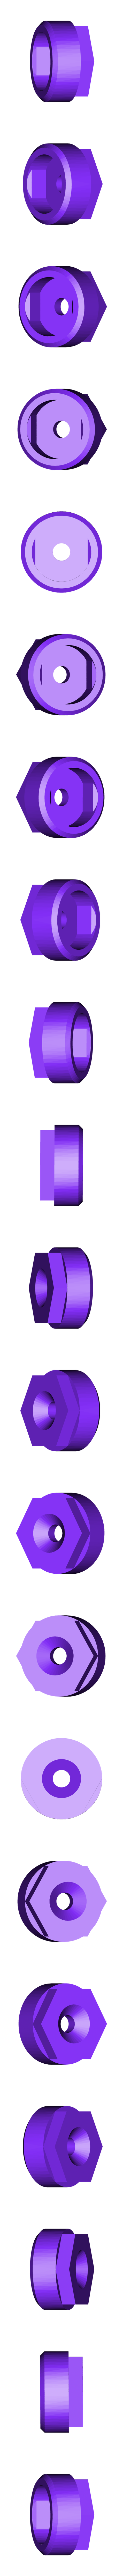 OpenRC_F1_250scaled_-_Wheel_Lock_Nut_v3_v3-1.STL Download free STL file OpenRC F1 250% scaled • Template to 3D print, colorFabb